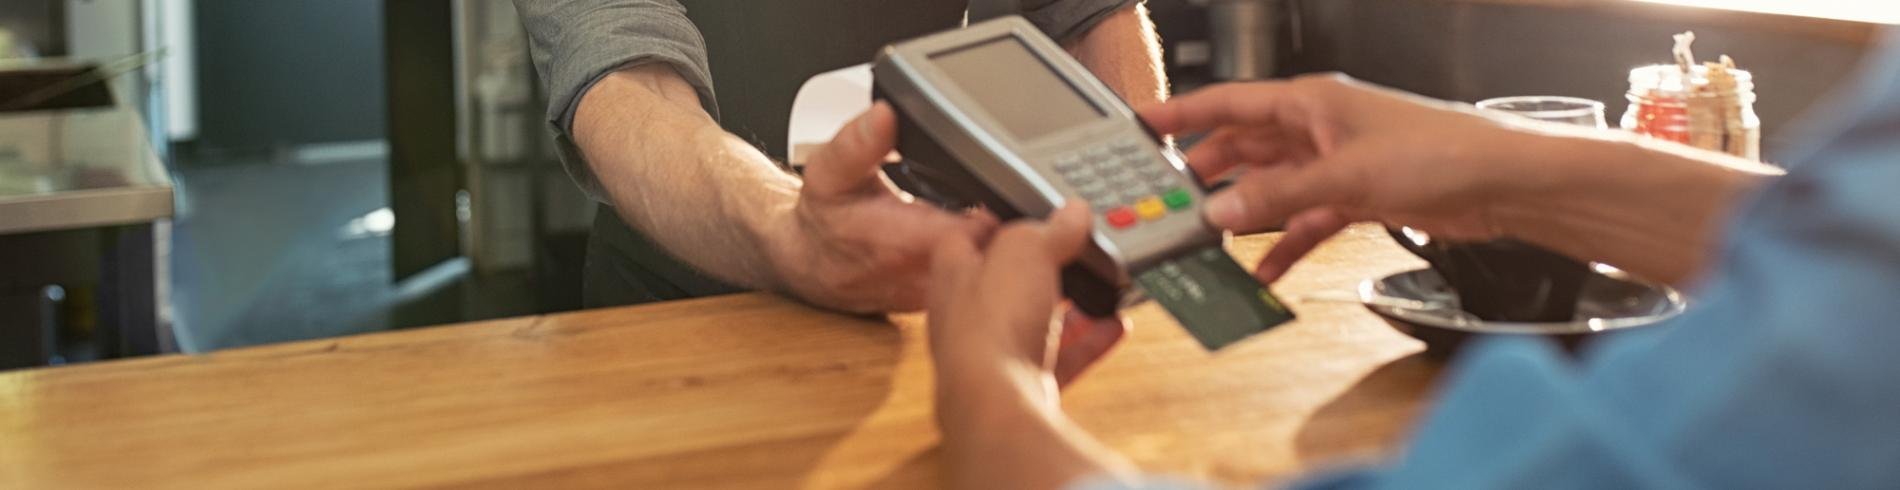 Person paying by credit card